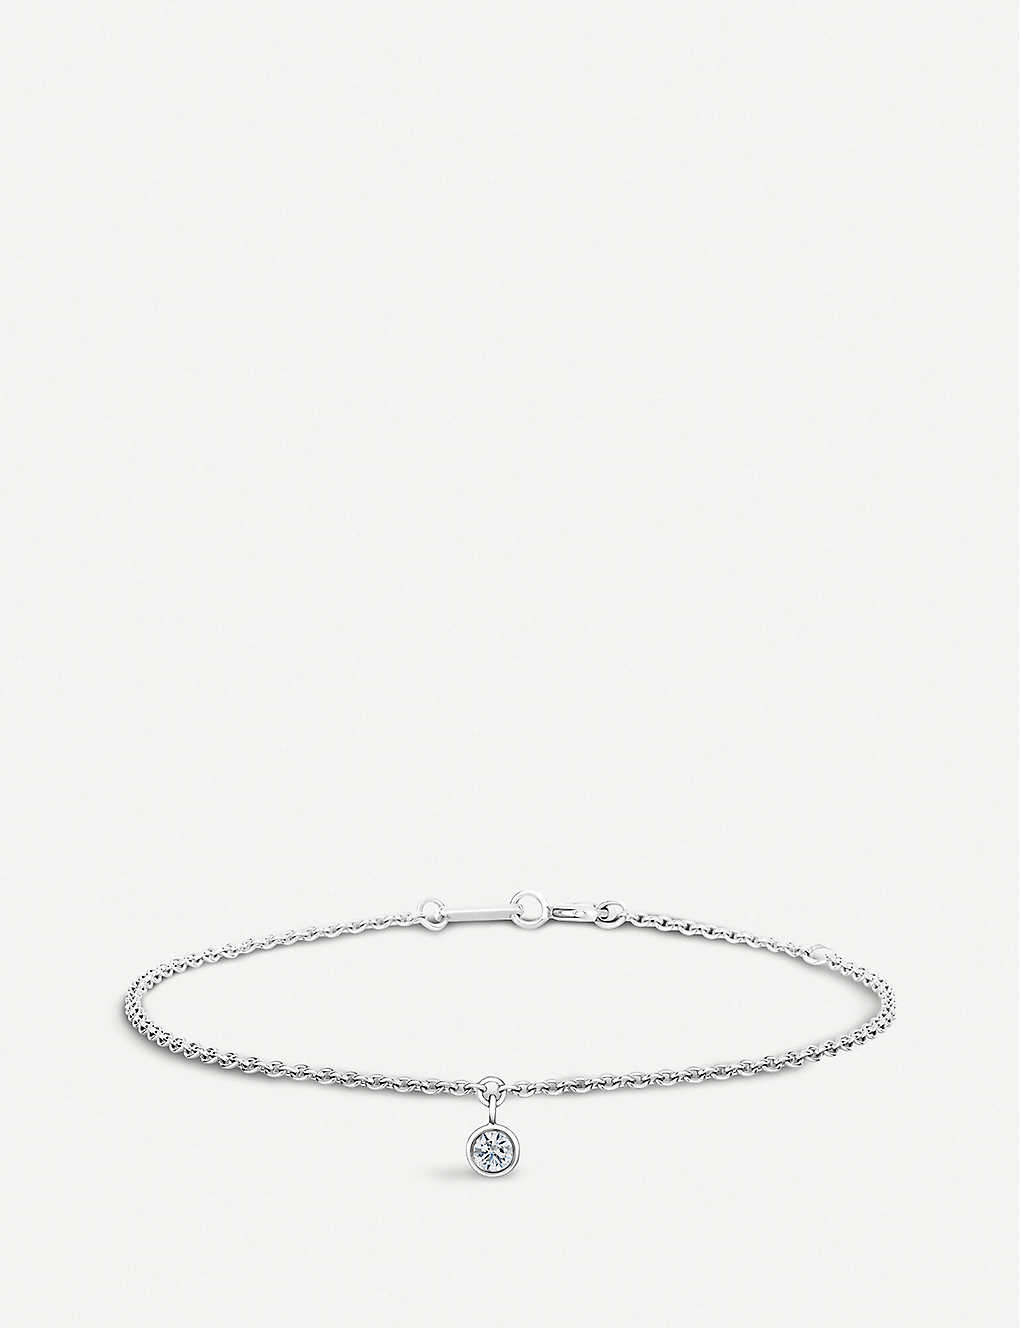 DE BEERS: My First De Beers White Gold One 18ct Diamond bracelet